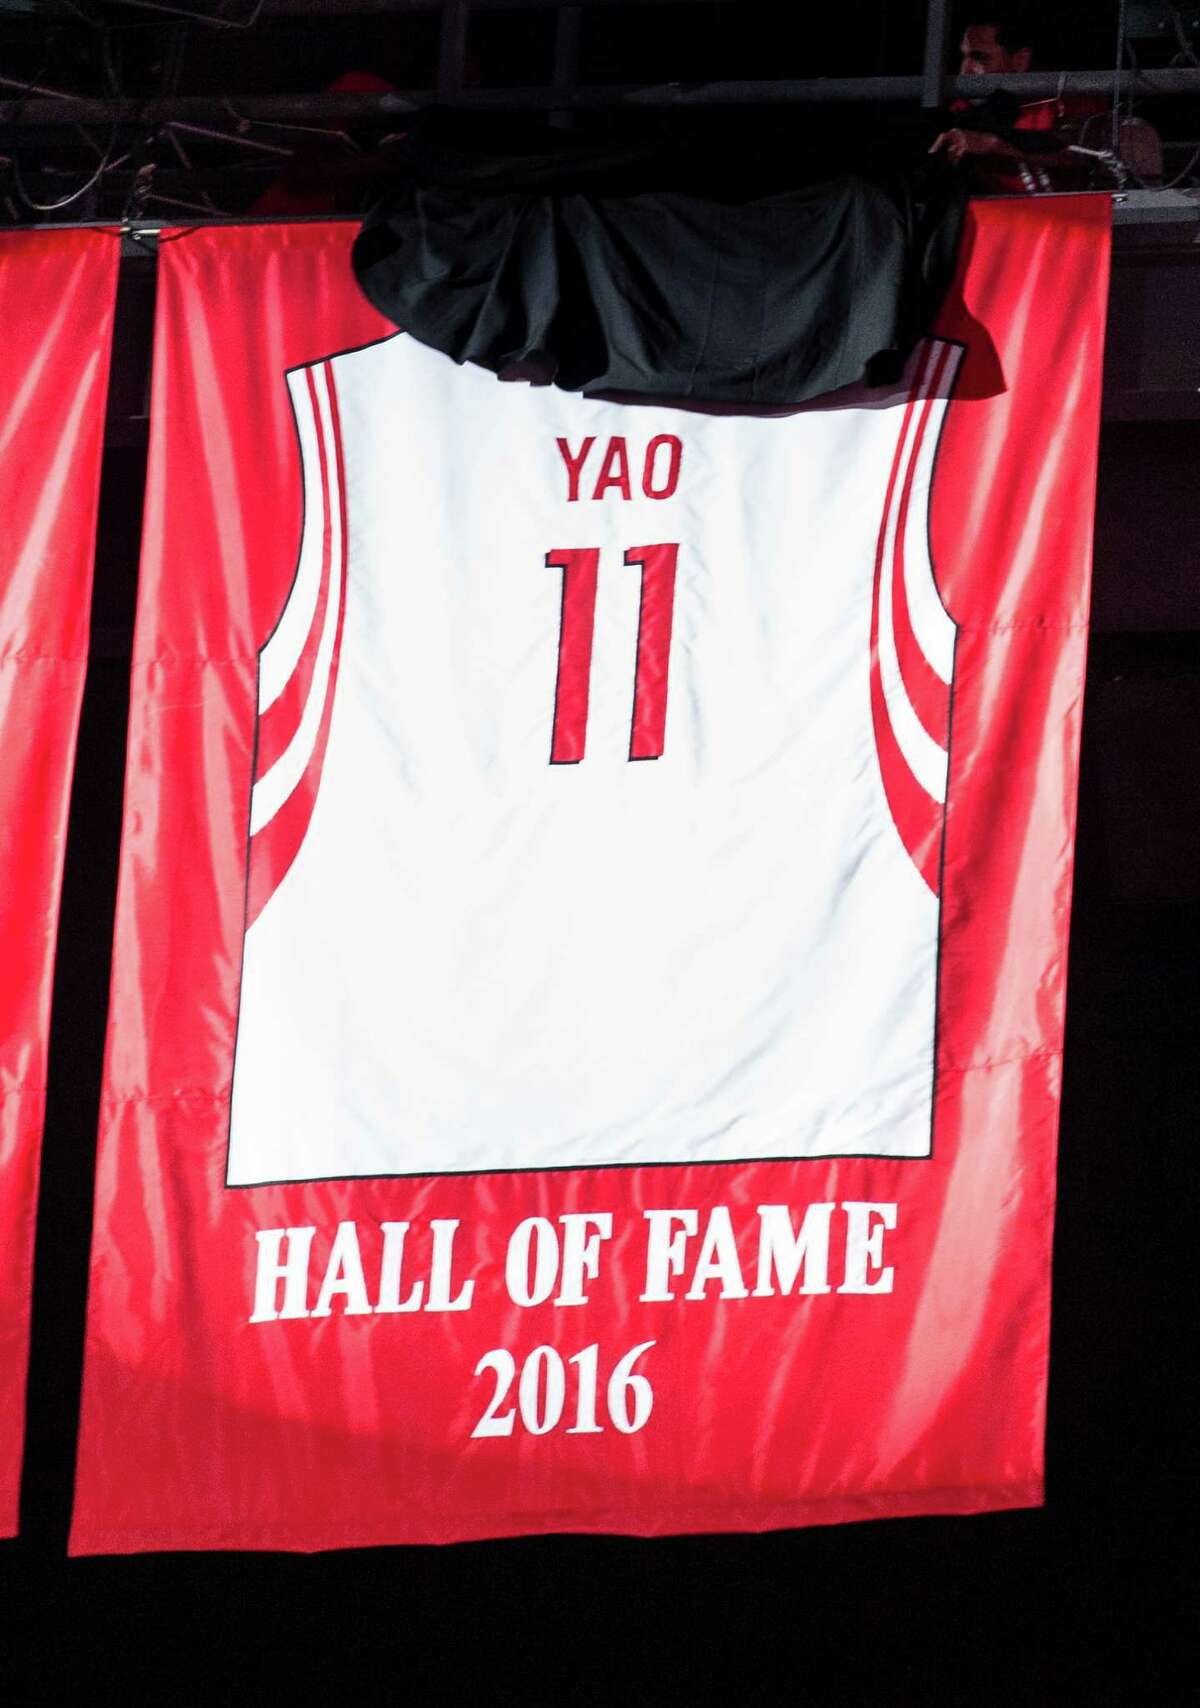 Yao Ming's No. 11 jersey joined those of six other franchise stalwarts forever on display.